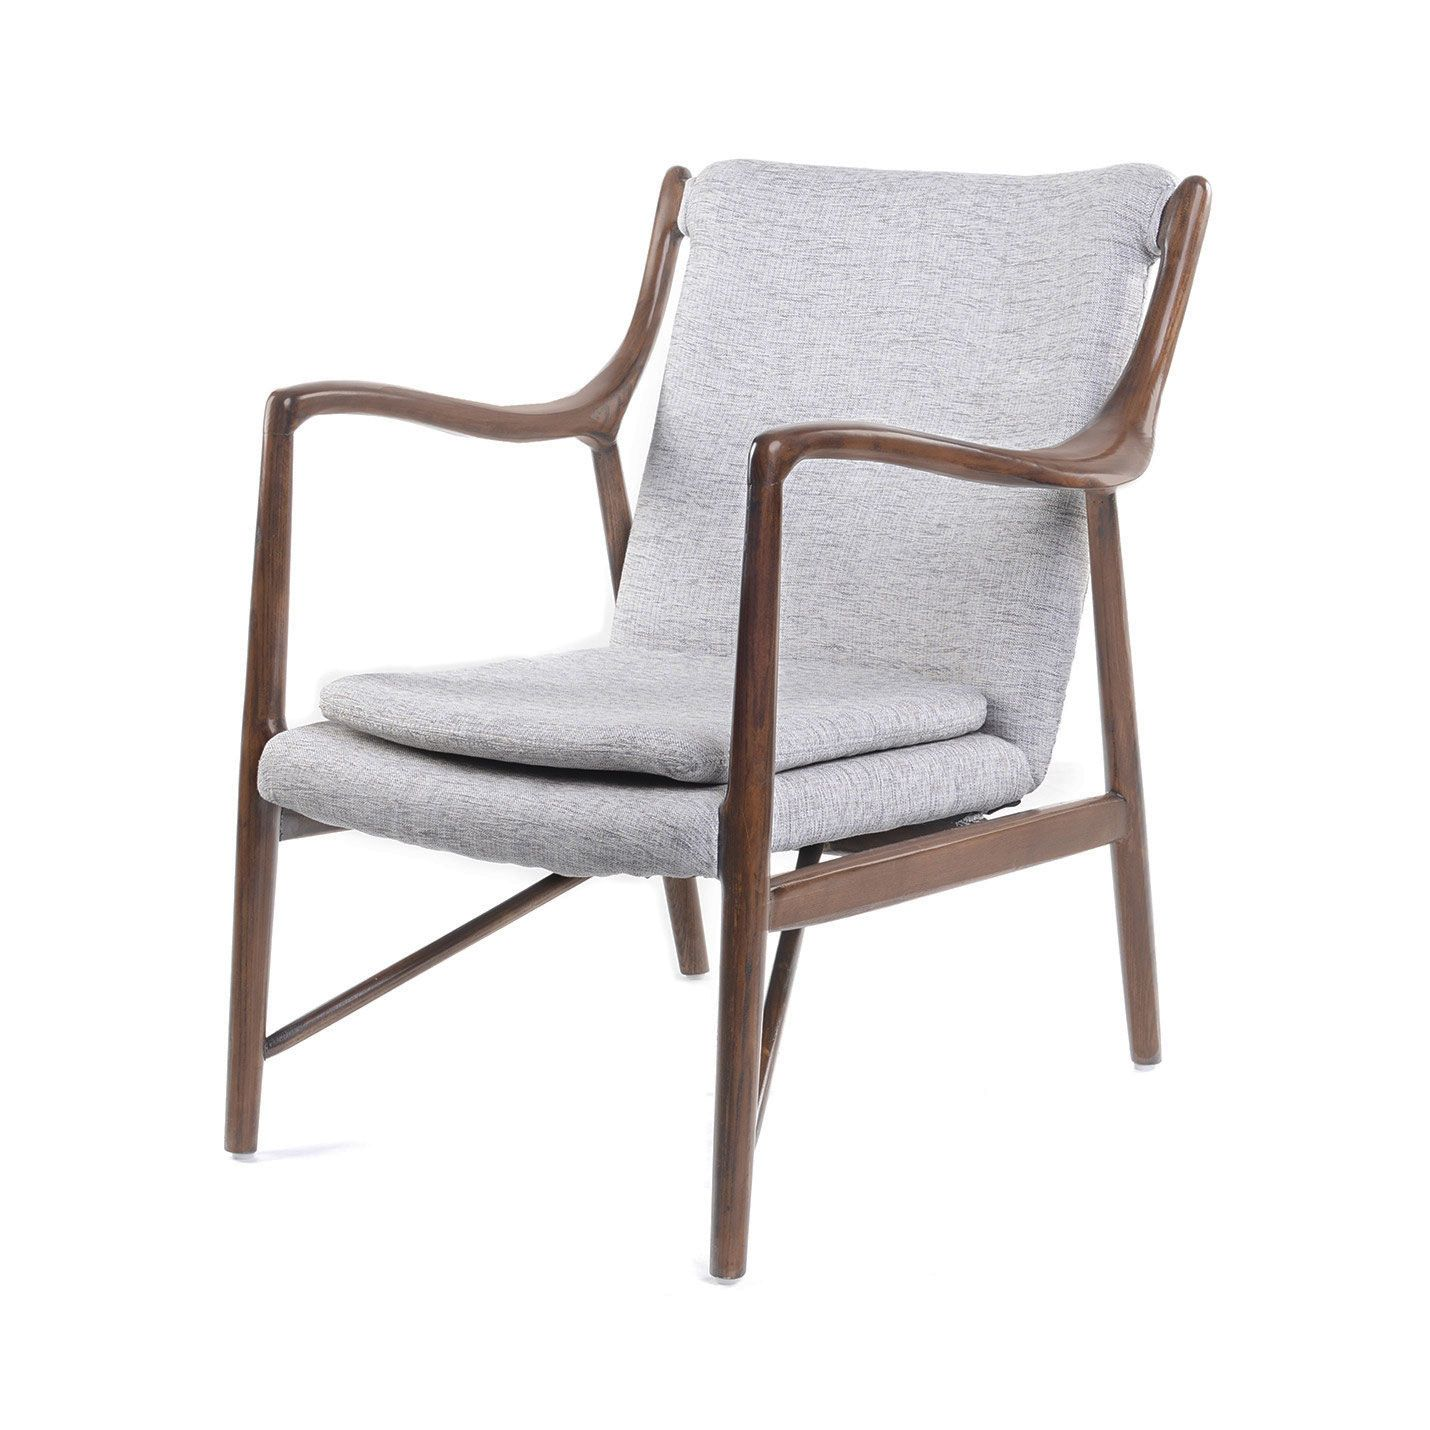 Best Simple Surprise Lounge Chair In Gray Dotandbo Com 400 x 300